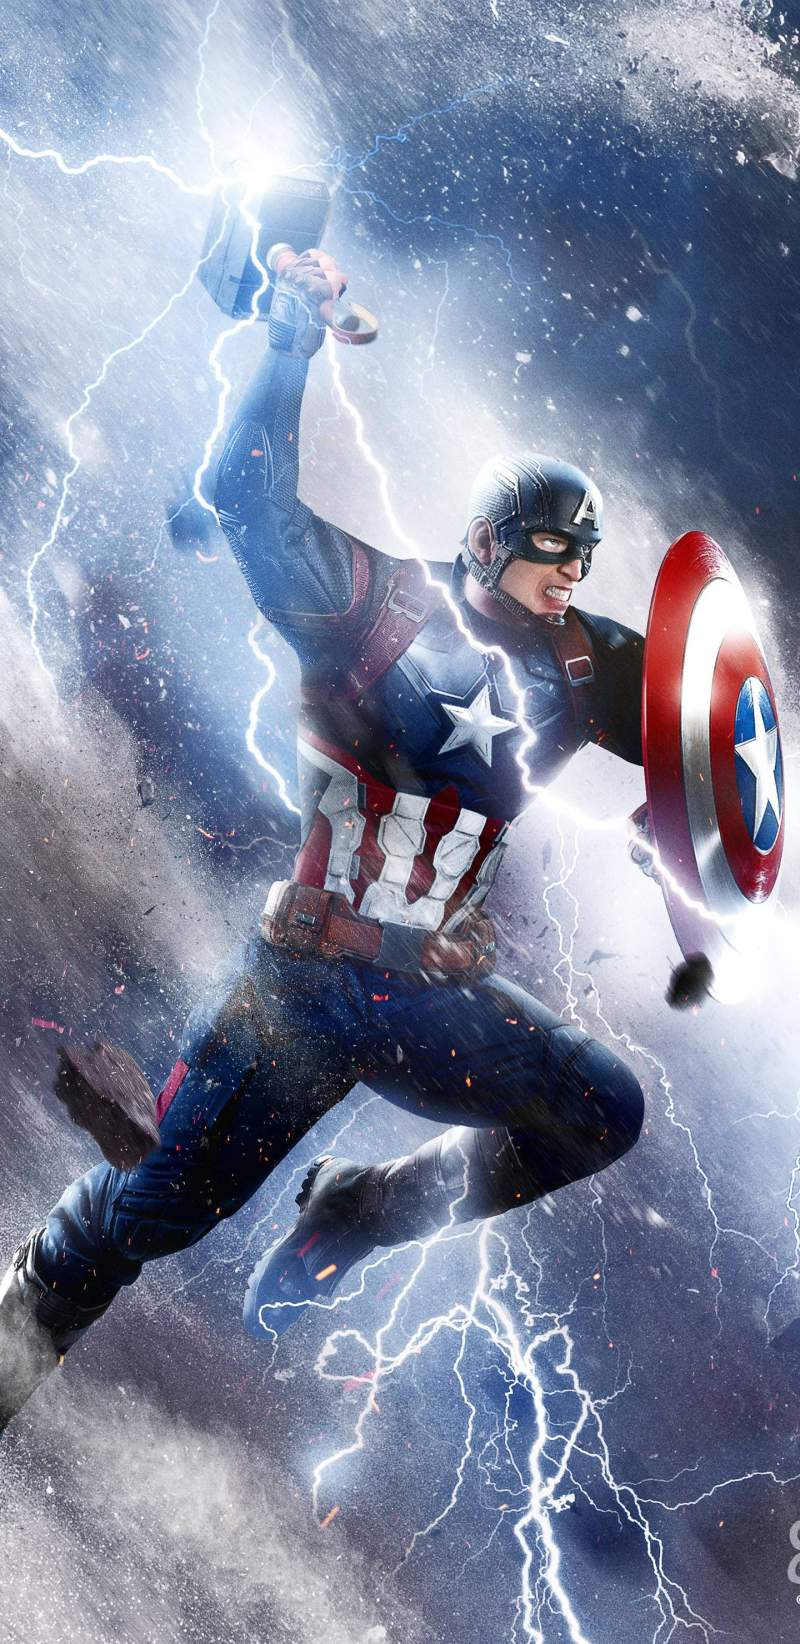 Cute Christmas Wallpaper Quotes Captain America Thor Hammer Attack Iphone Wallpaper